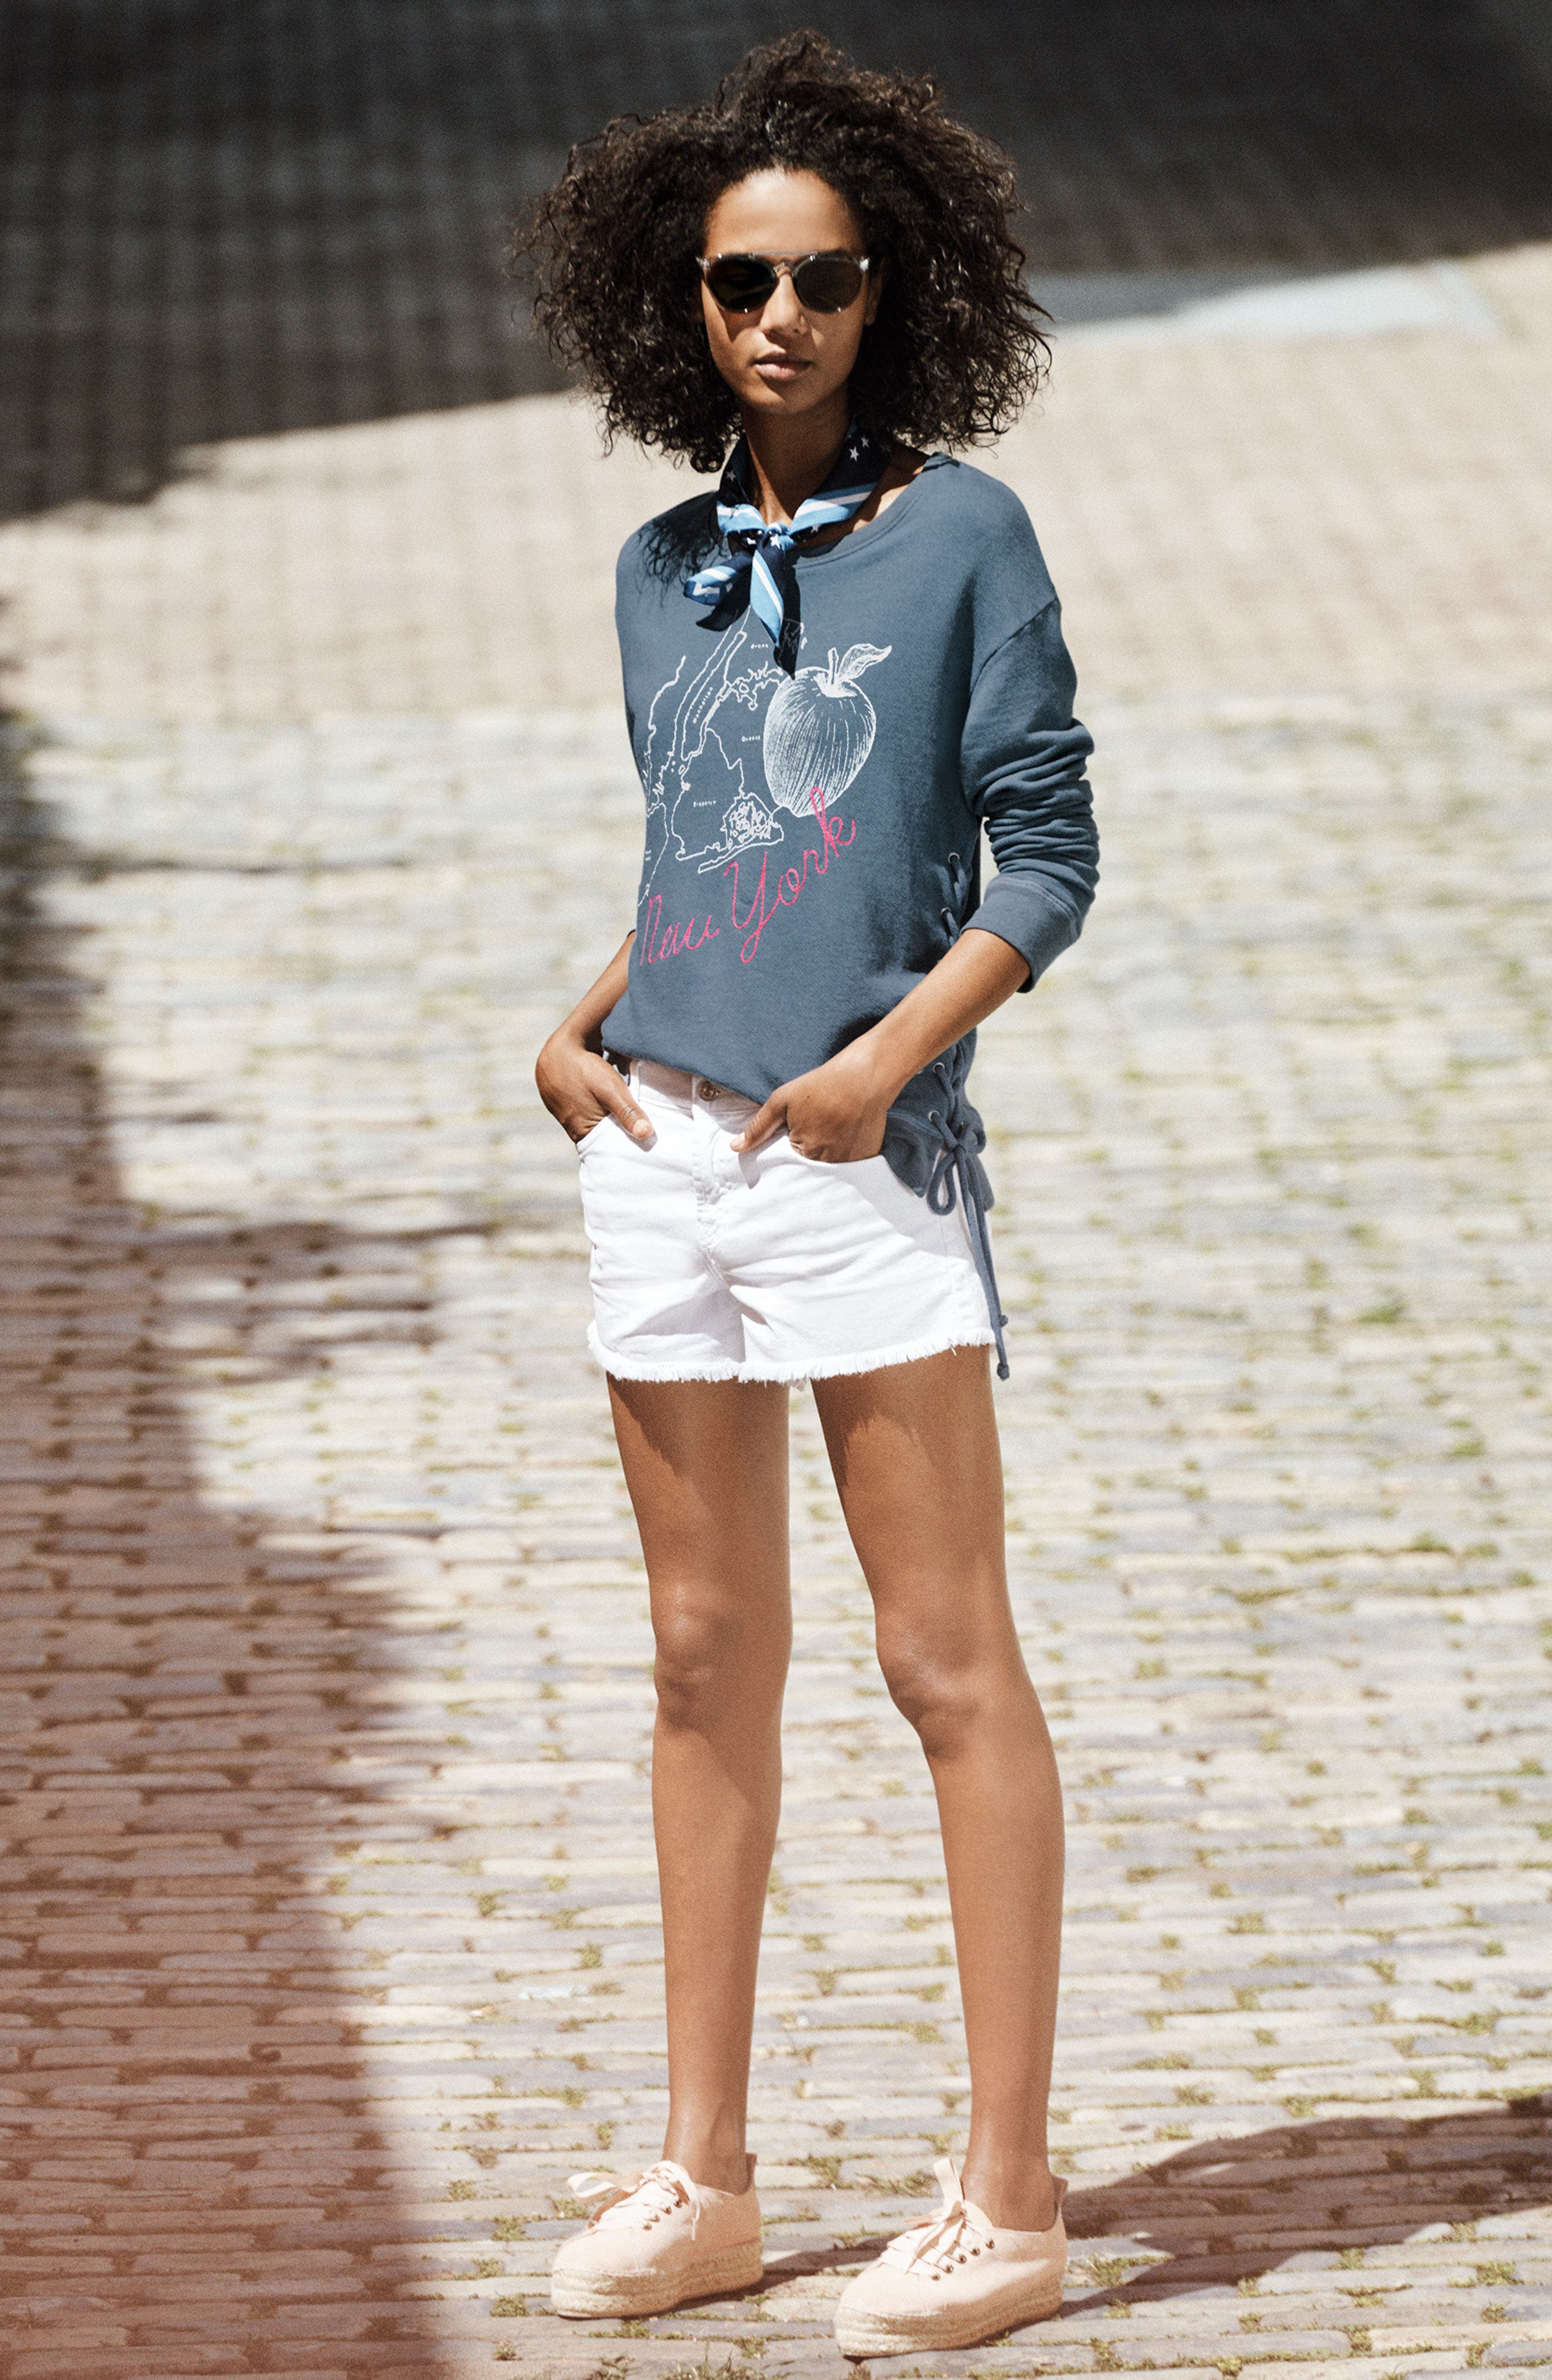 Sundry Sweatshirt & 7 For All Mankind® Shorts Outfit with Accessories